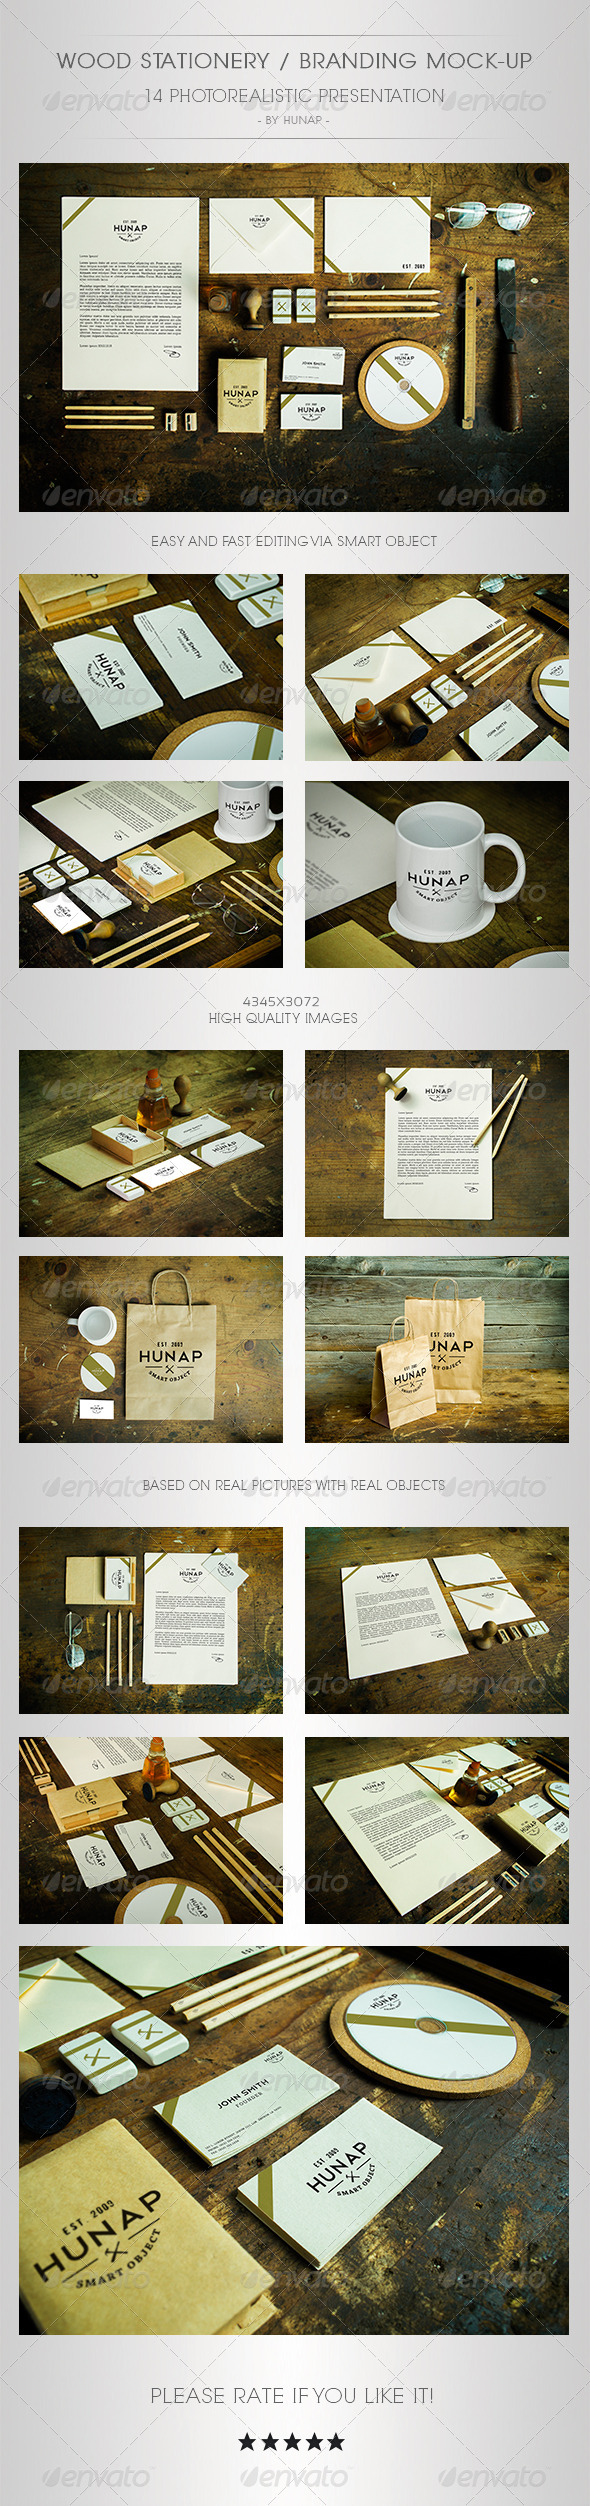 Wood Stationery / Branding Mock-Up - Stationery Print